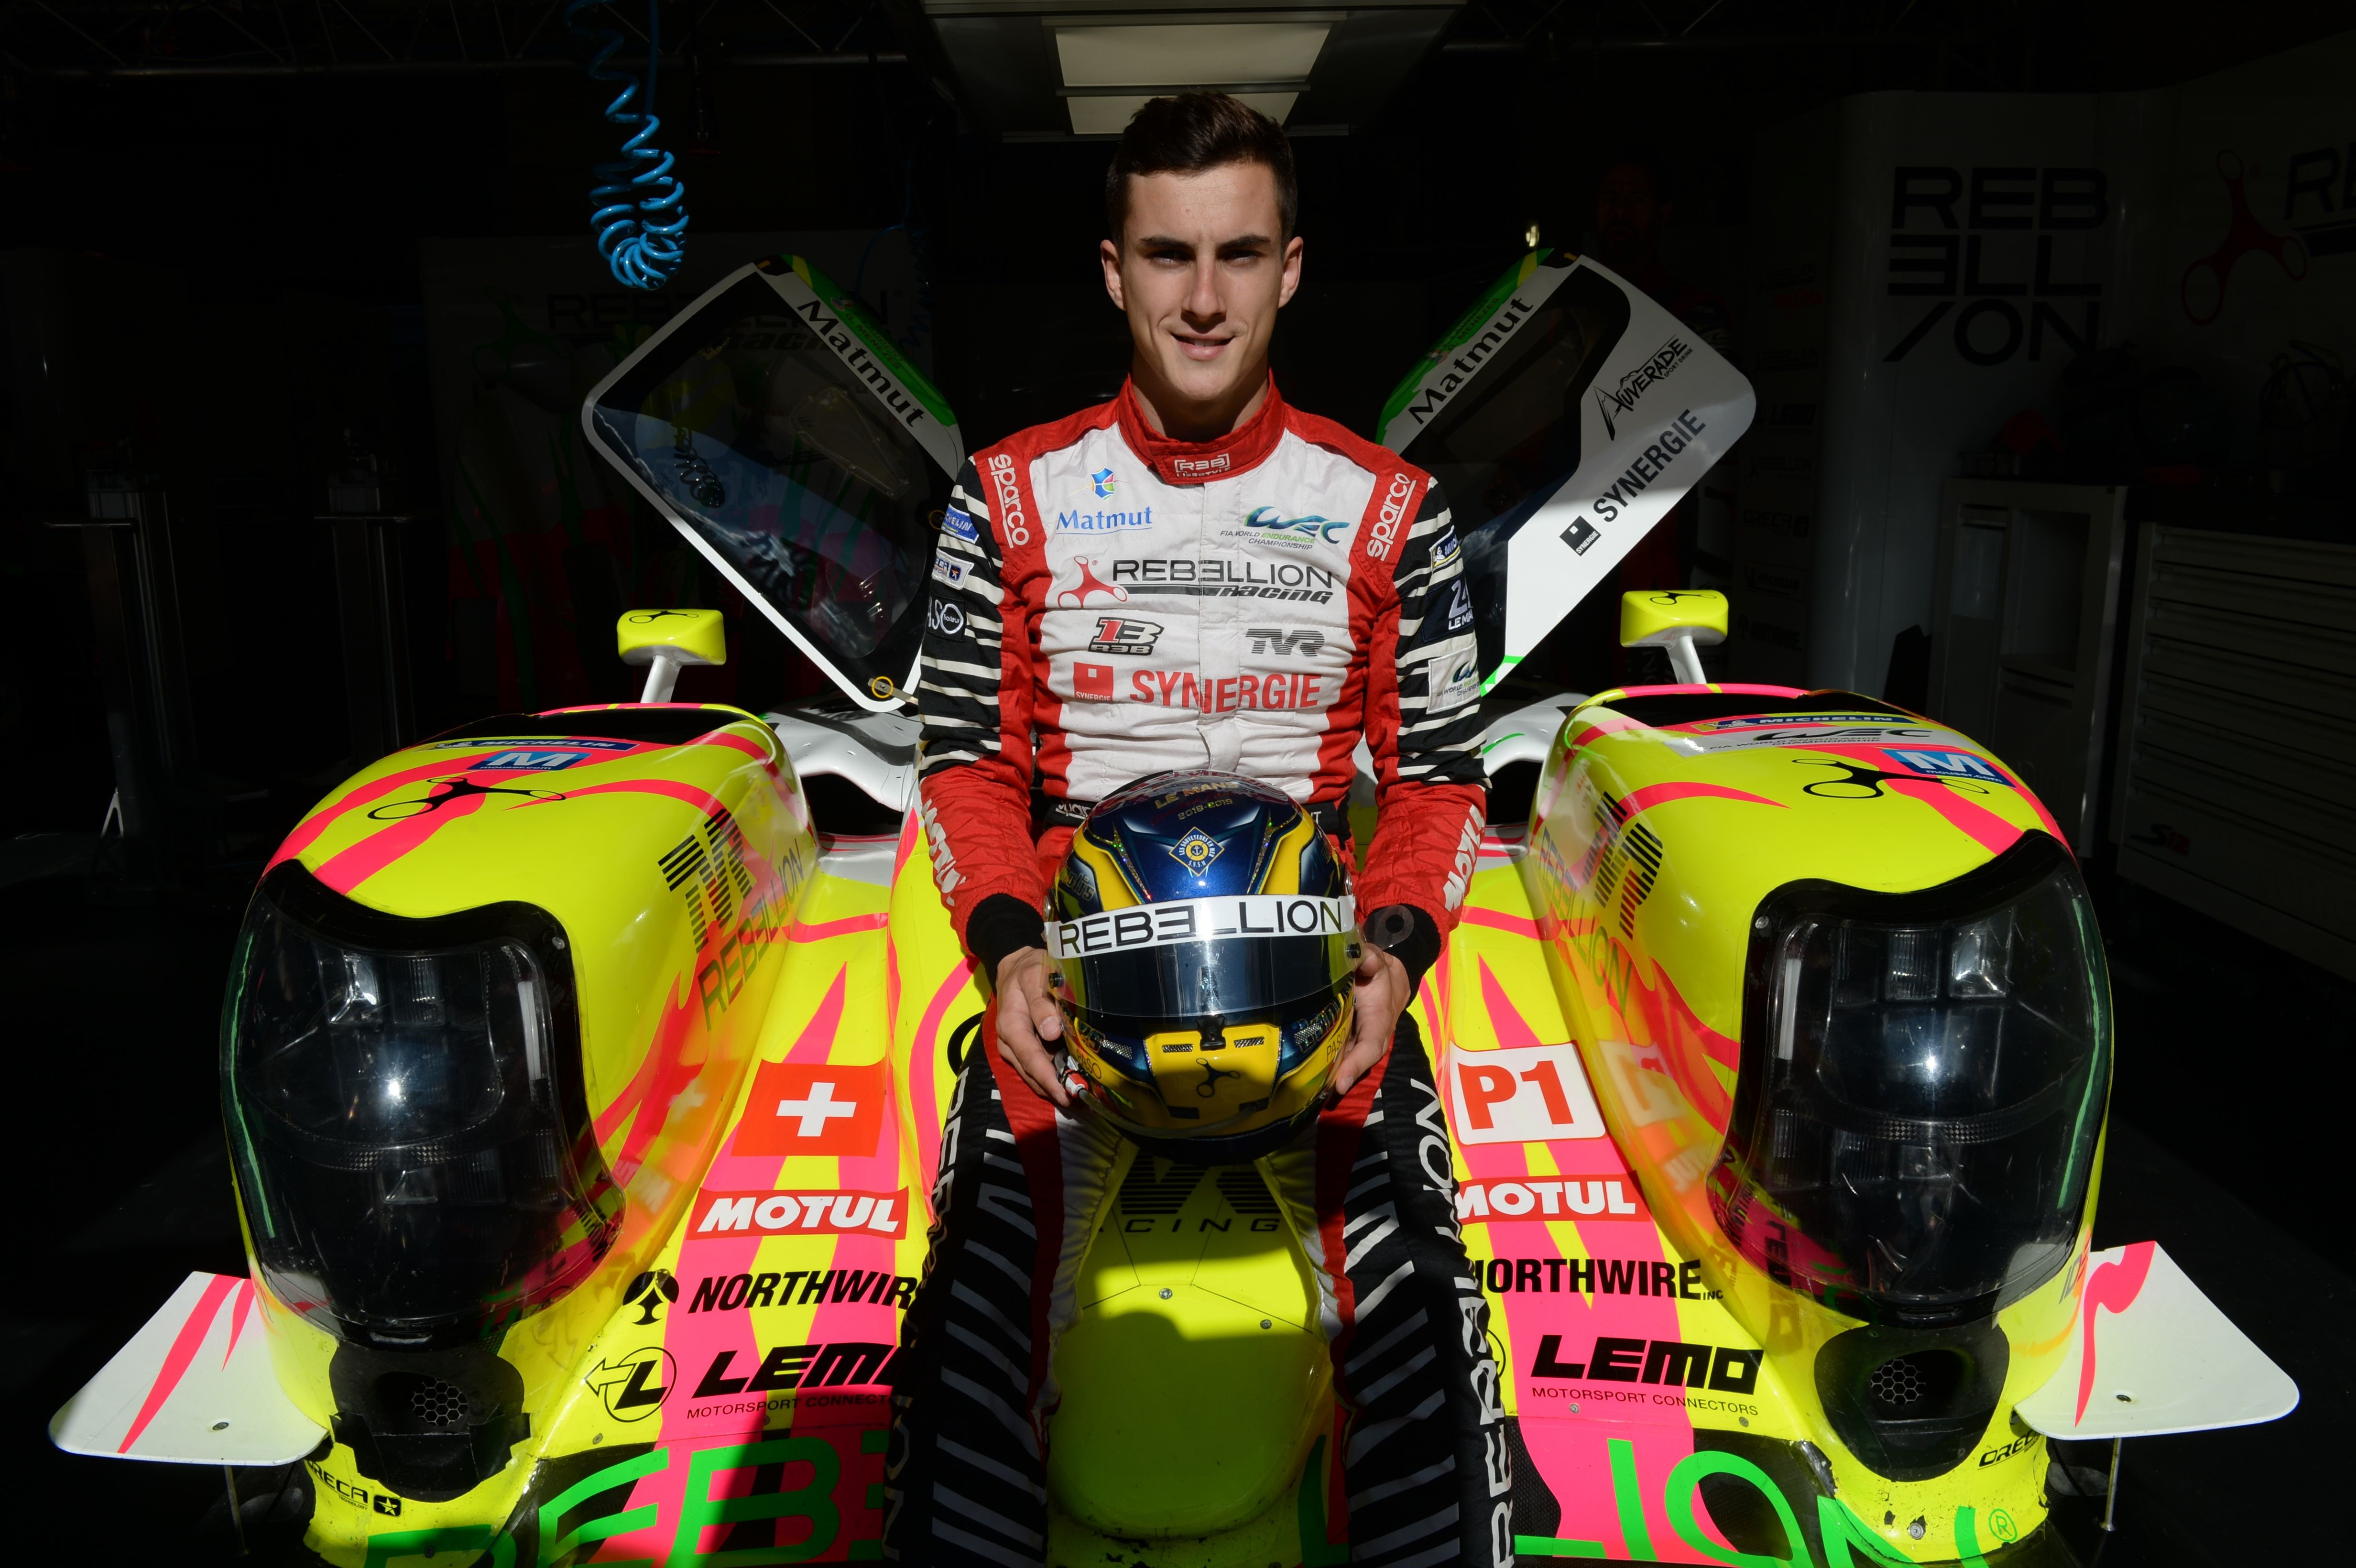 Thomas Laurent (Rebellion) aux 24 Heures du Mans 2019